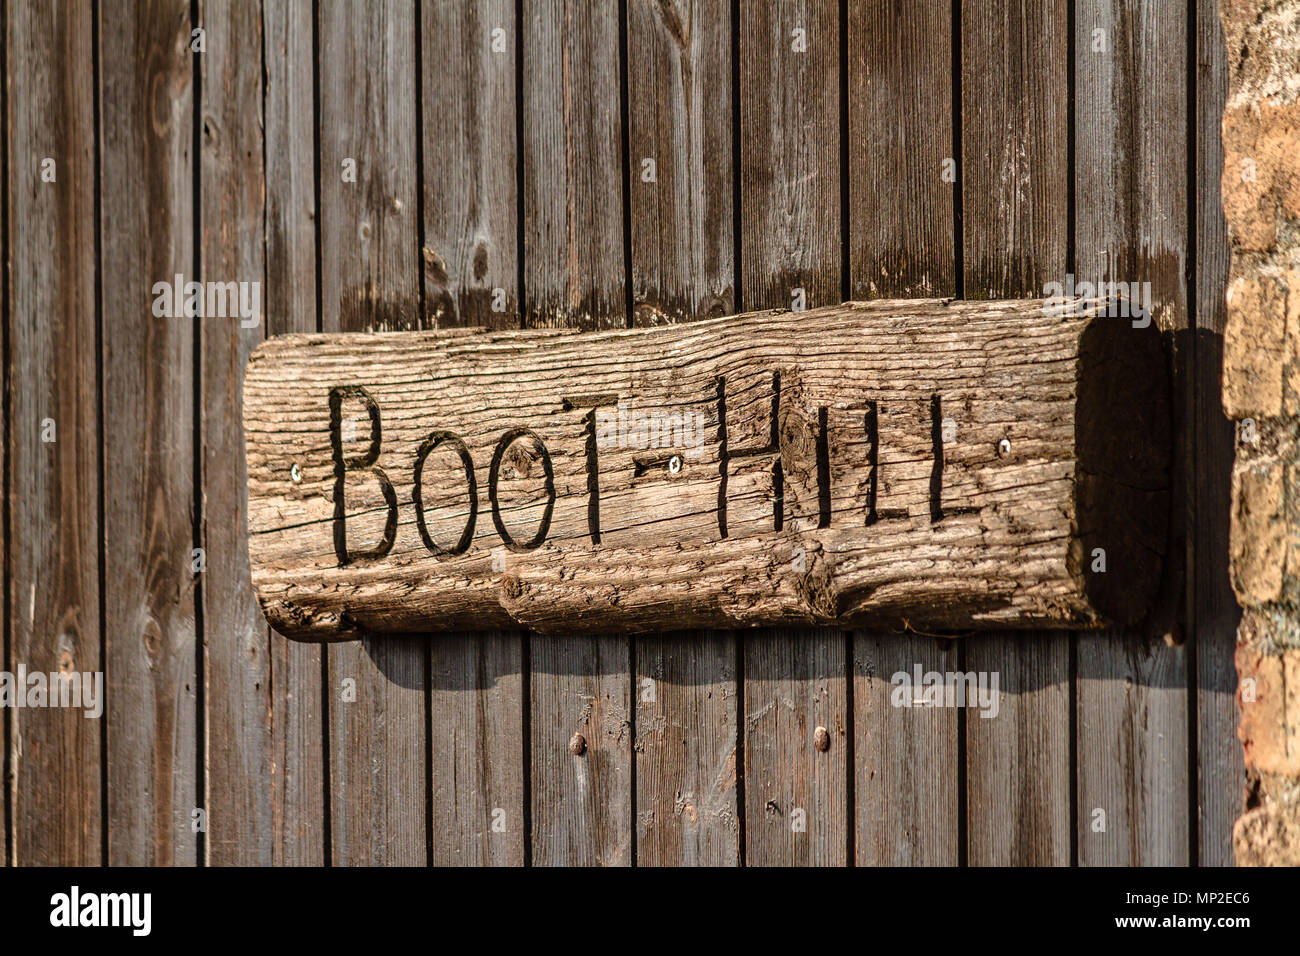 Wooden sign saying Boot Hill, Teignmouth, Devon. Feb 2018. - Stock Image